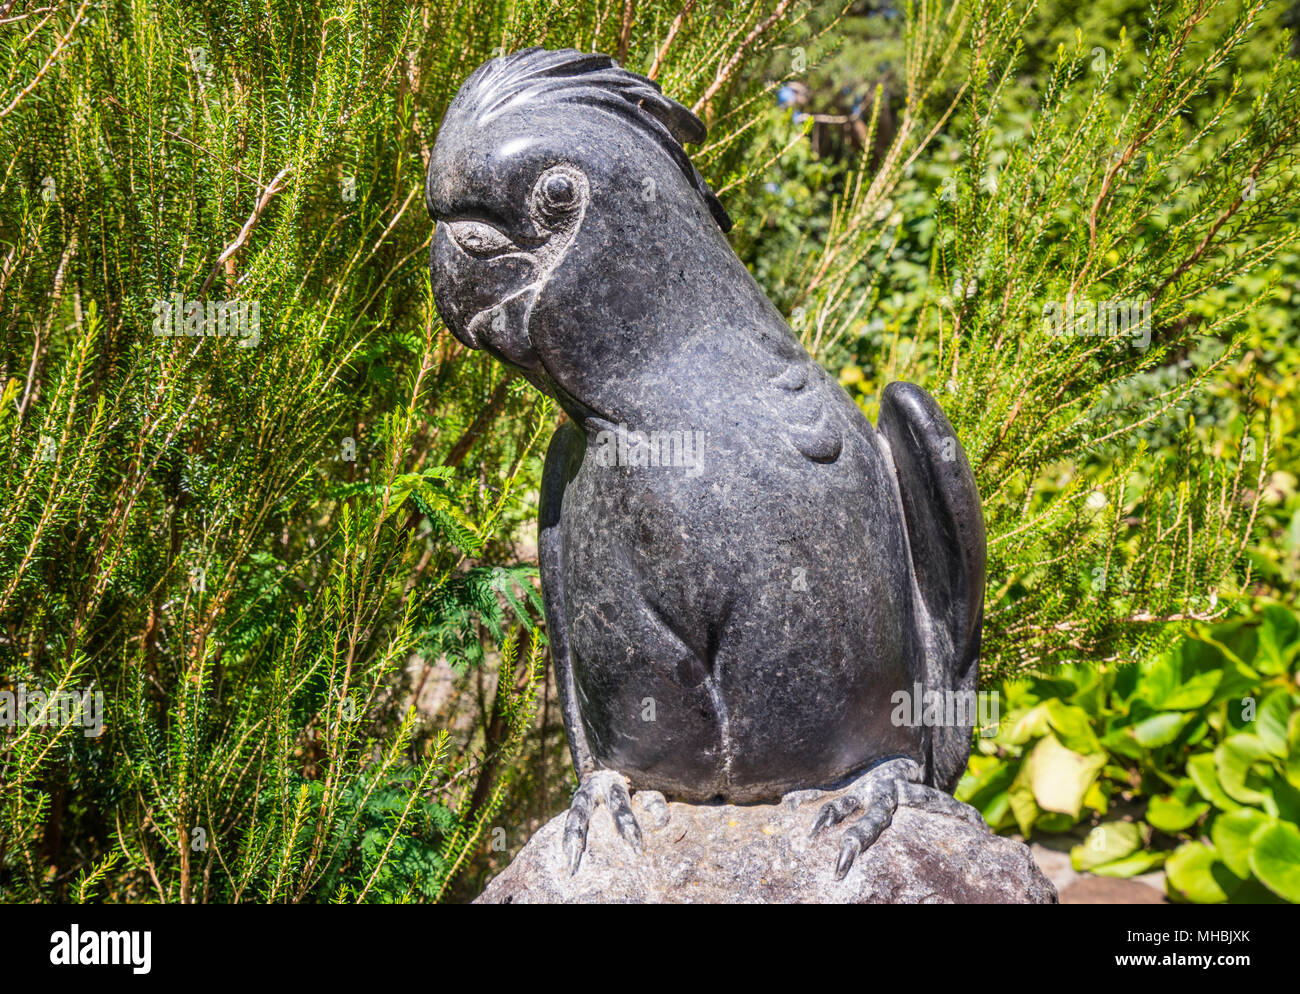 cockatoo sculpture at Blue Mountains Botanic Garden, Mount Tomah, the 128 hectare public garden, 1000 m above sea level specializes in cool-climate pl - Stock Image